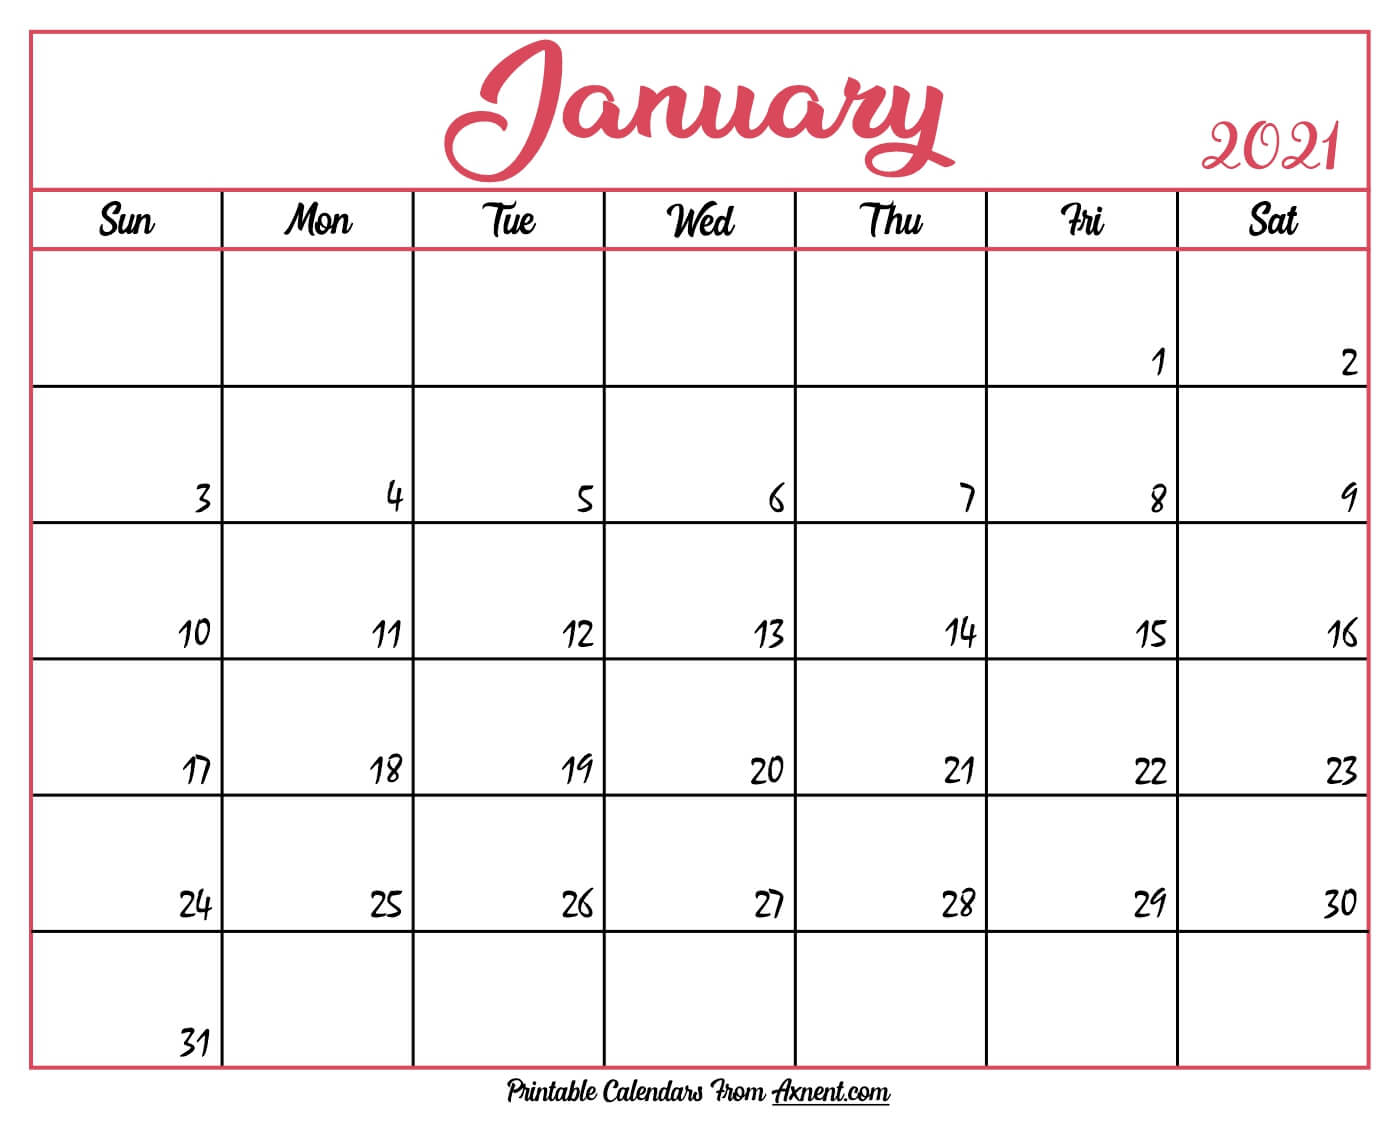 Printable January 2021 Calendar Template - Time Management with Shift Schedule Jan 2021